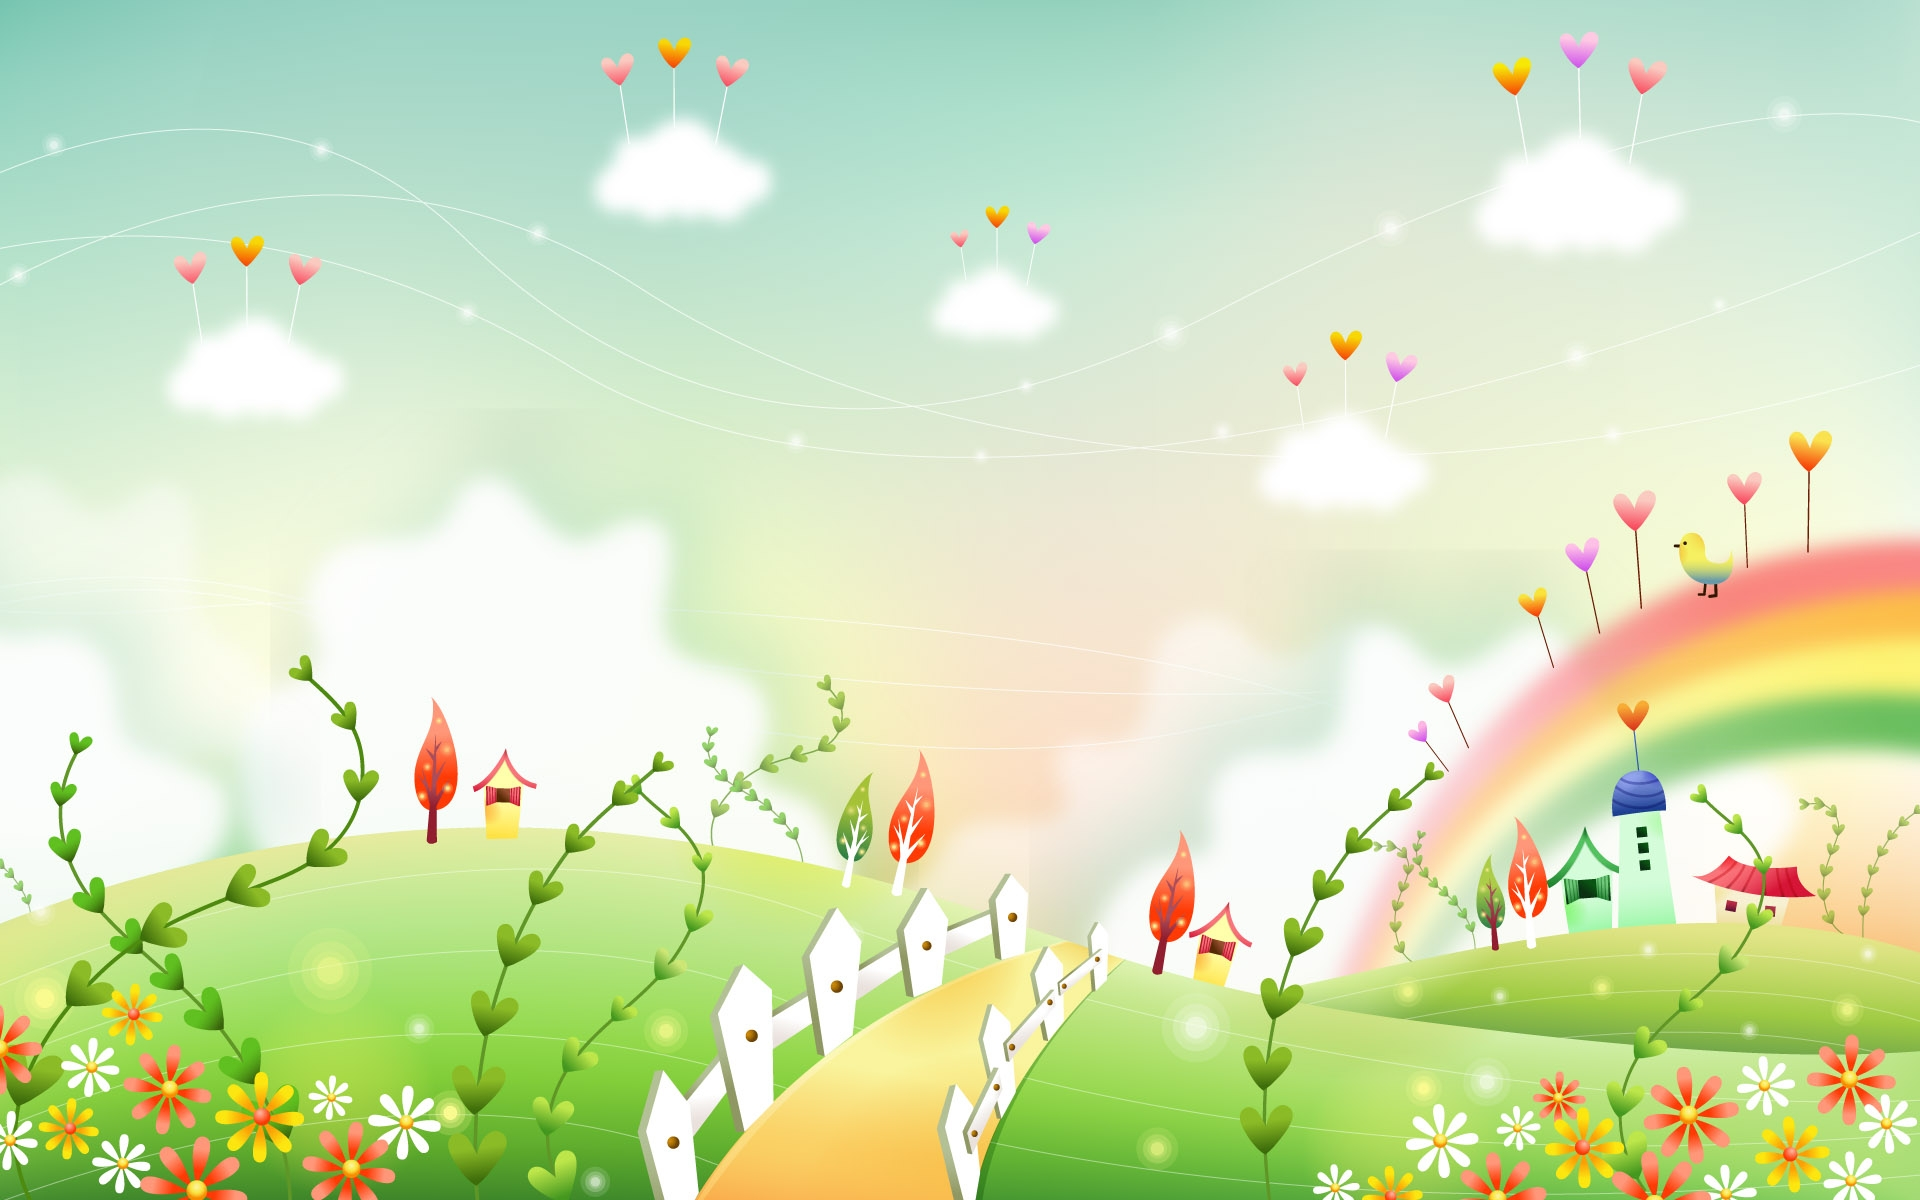 Wallpaper clipart images clip art freeuse Free Nature Background Cliparts, Download Free Clip Art, Free Clip ... clip art freeuse